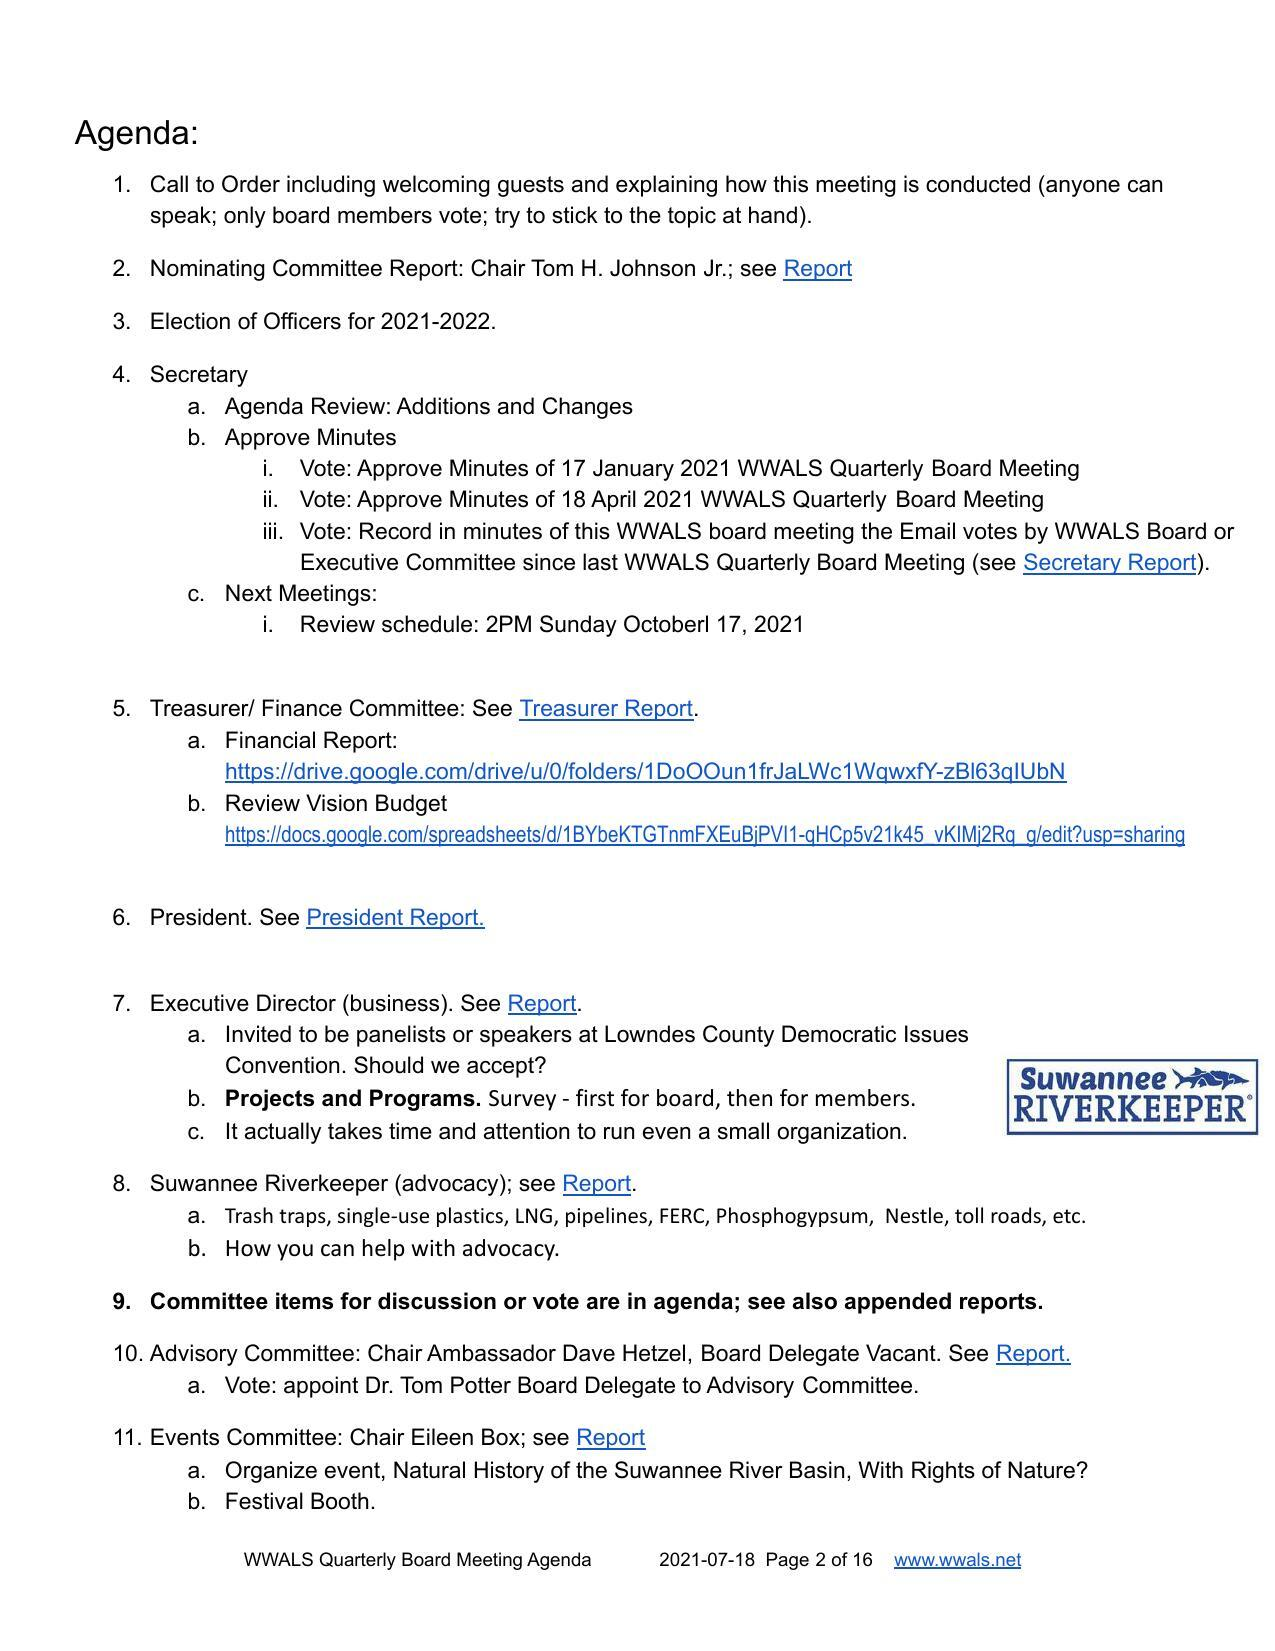 [Election of Officers: Quarterly Board Meeting 2021-07-18]